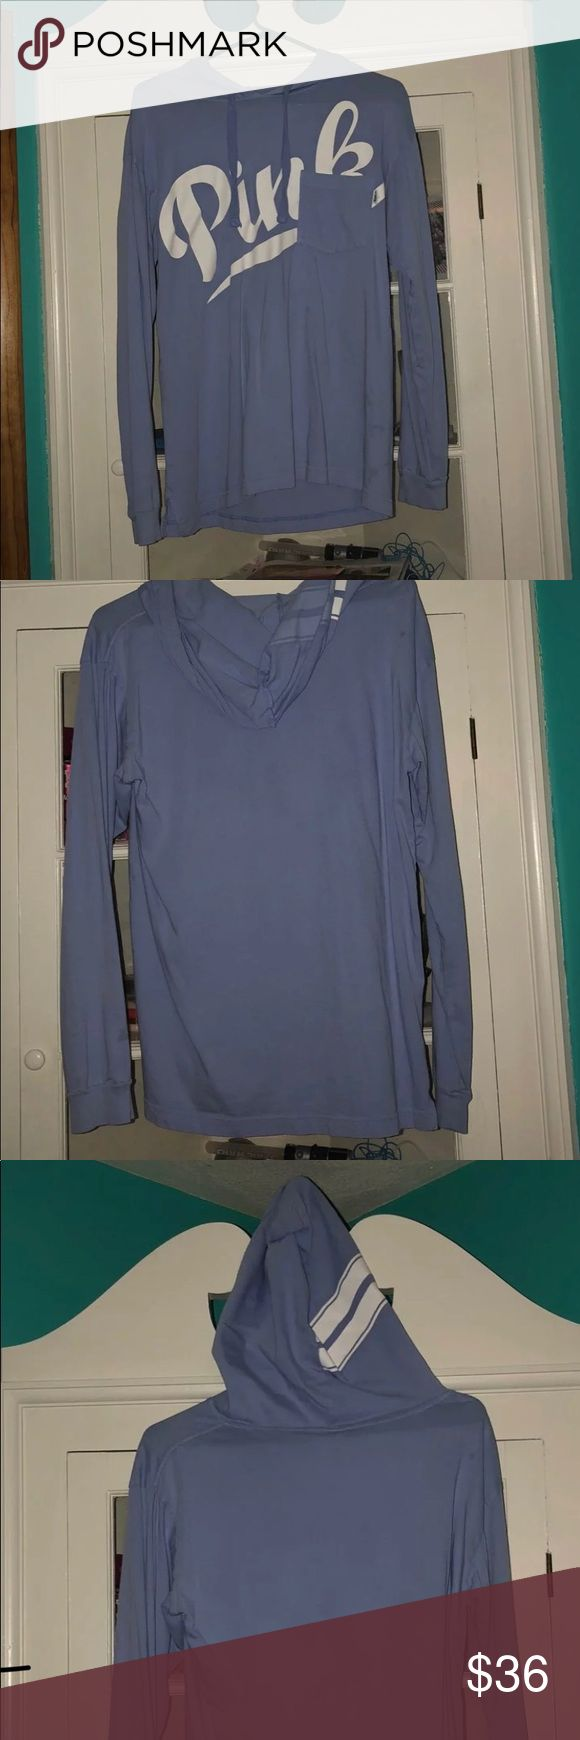 pink-victoria's secret shirt lilac purple long sleeve brand pink t shirt with pocket strings and hood size small. great condition- never worn. a good option to wear with jeans and sneakers or sandals out with friends. open for offers no trades and i will mark prices down on a bundle. PINK Tops Tees - Long Sleeve